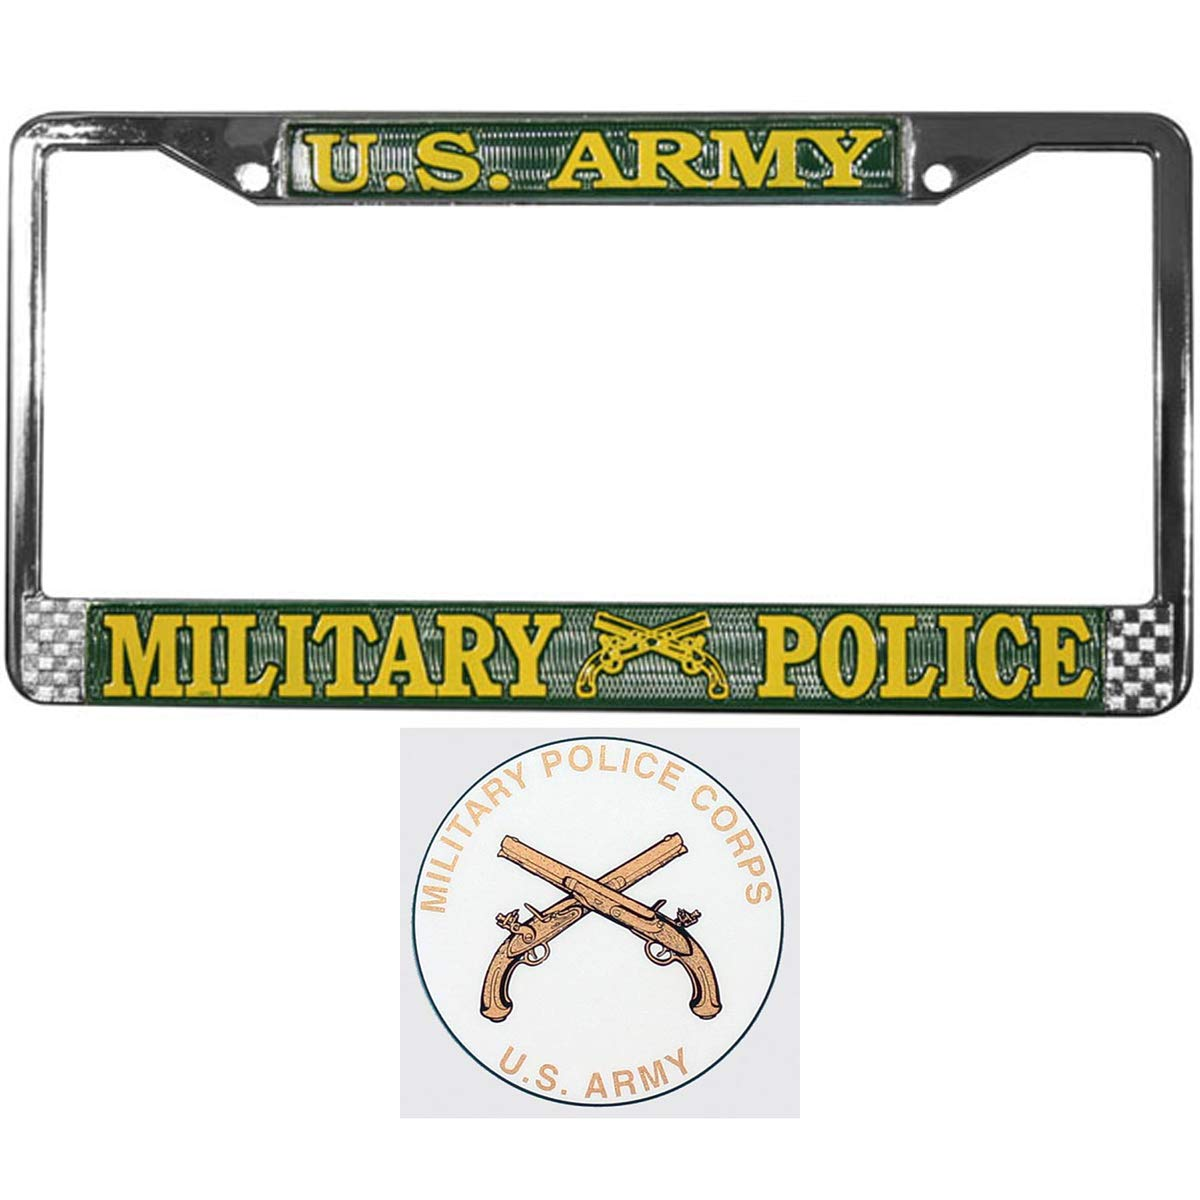 Butler Online Stores US Army Military Police License Plate Frame Bundle with US Army Military Police Decal